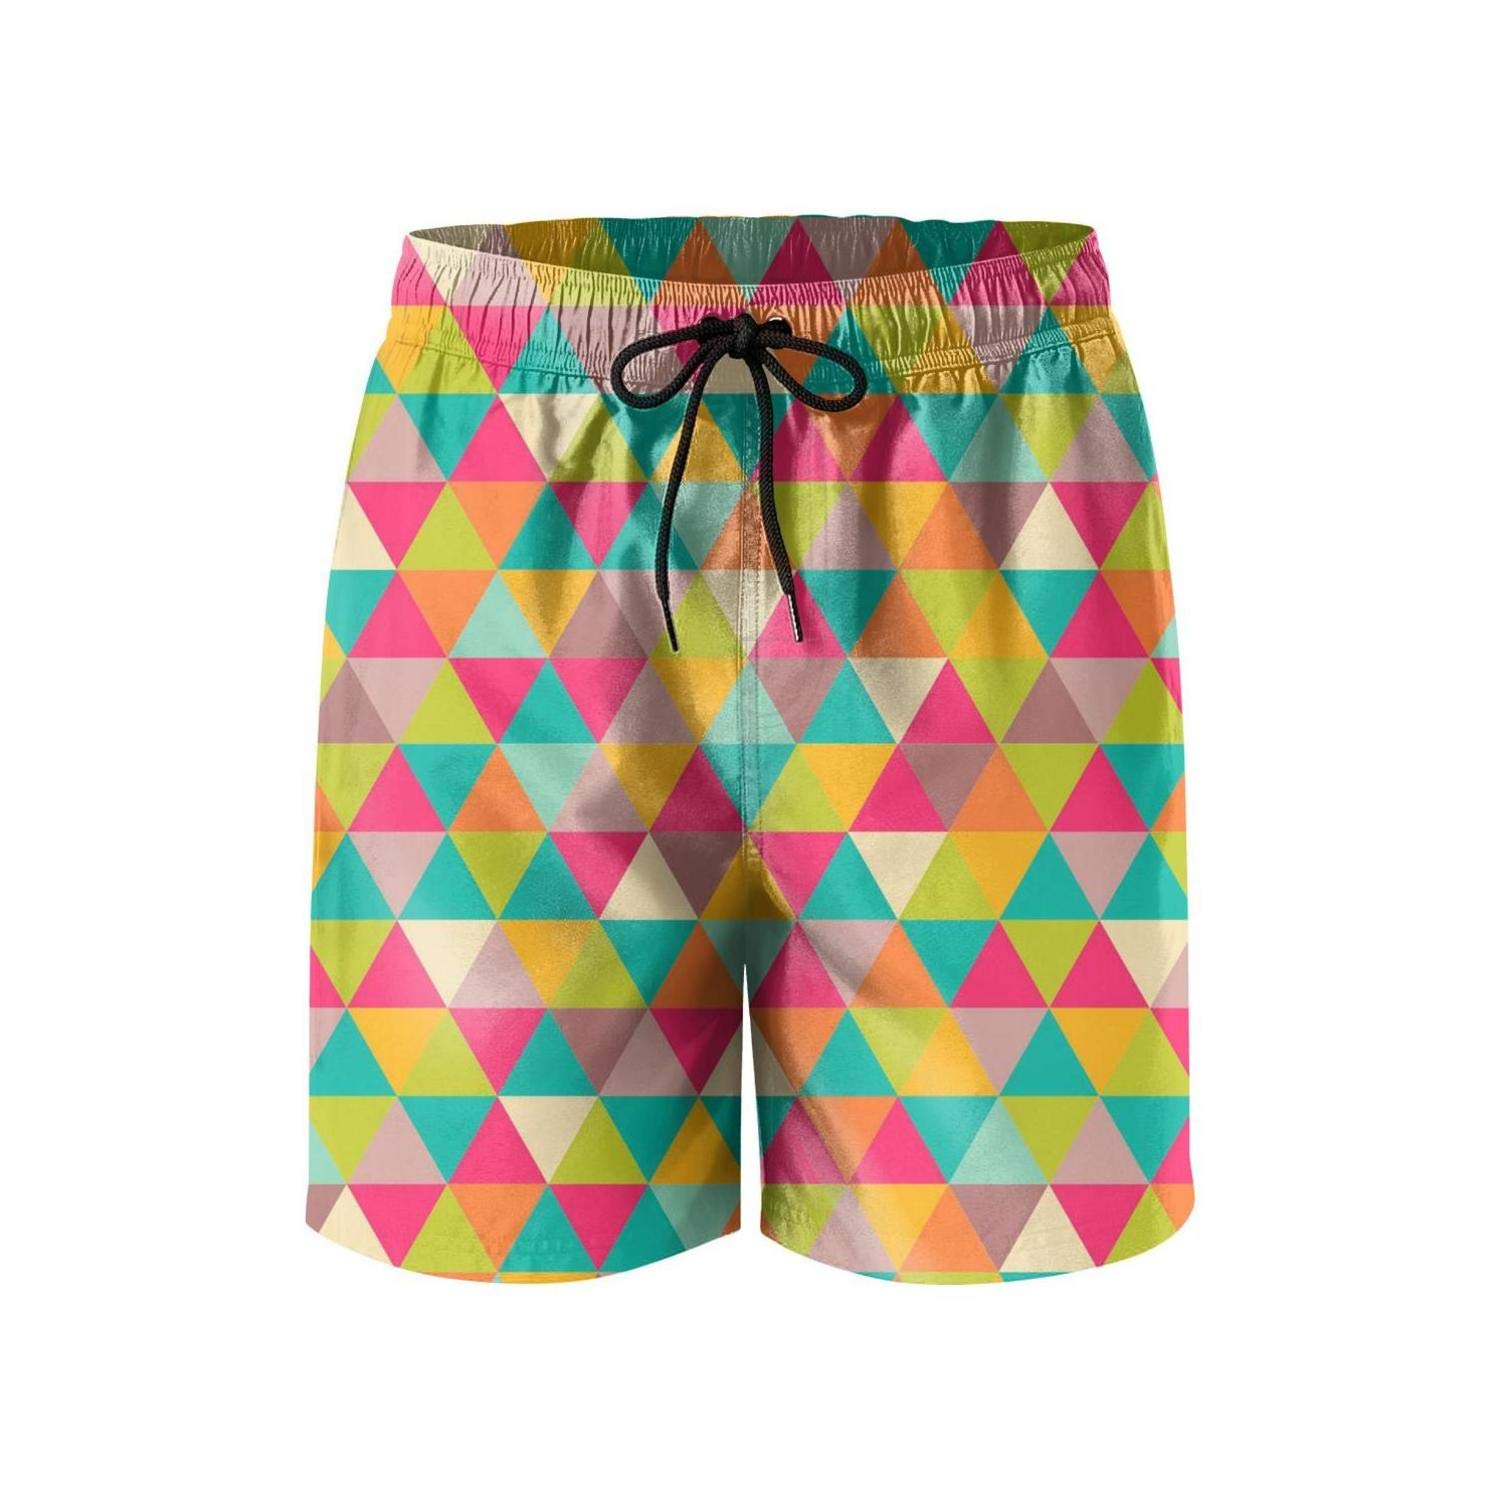 Camouflage Men Boardshorts City Elastic DSFASDXFX Colorful-Checkered-Red-and-Blue